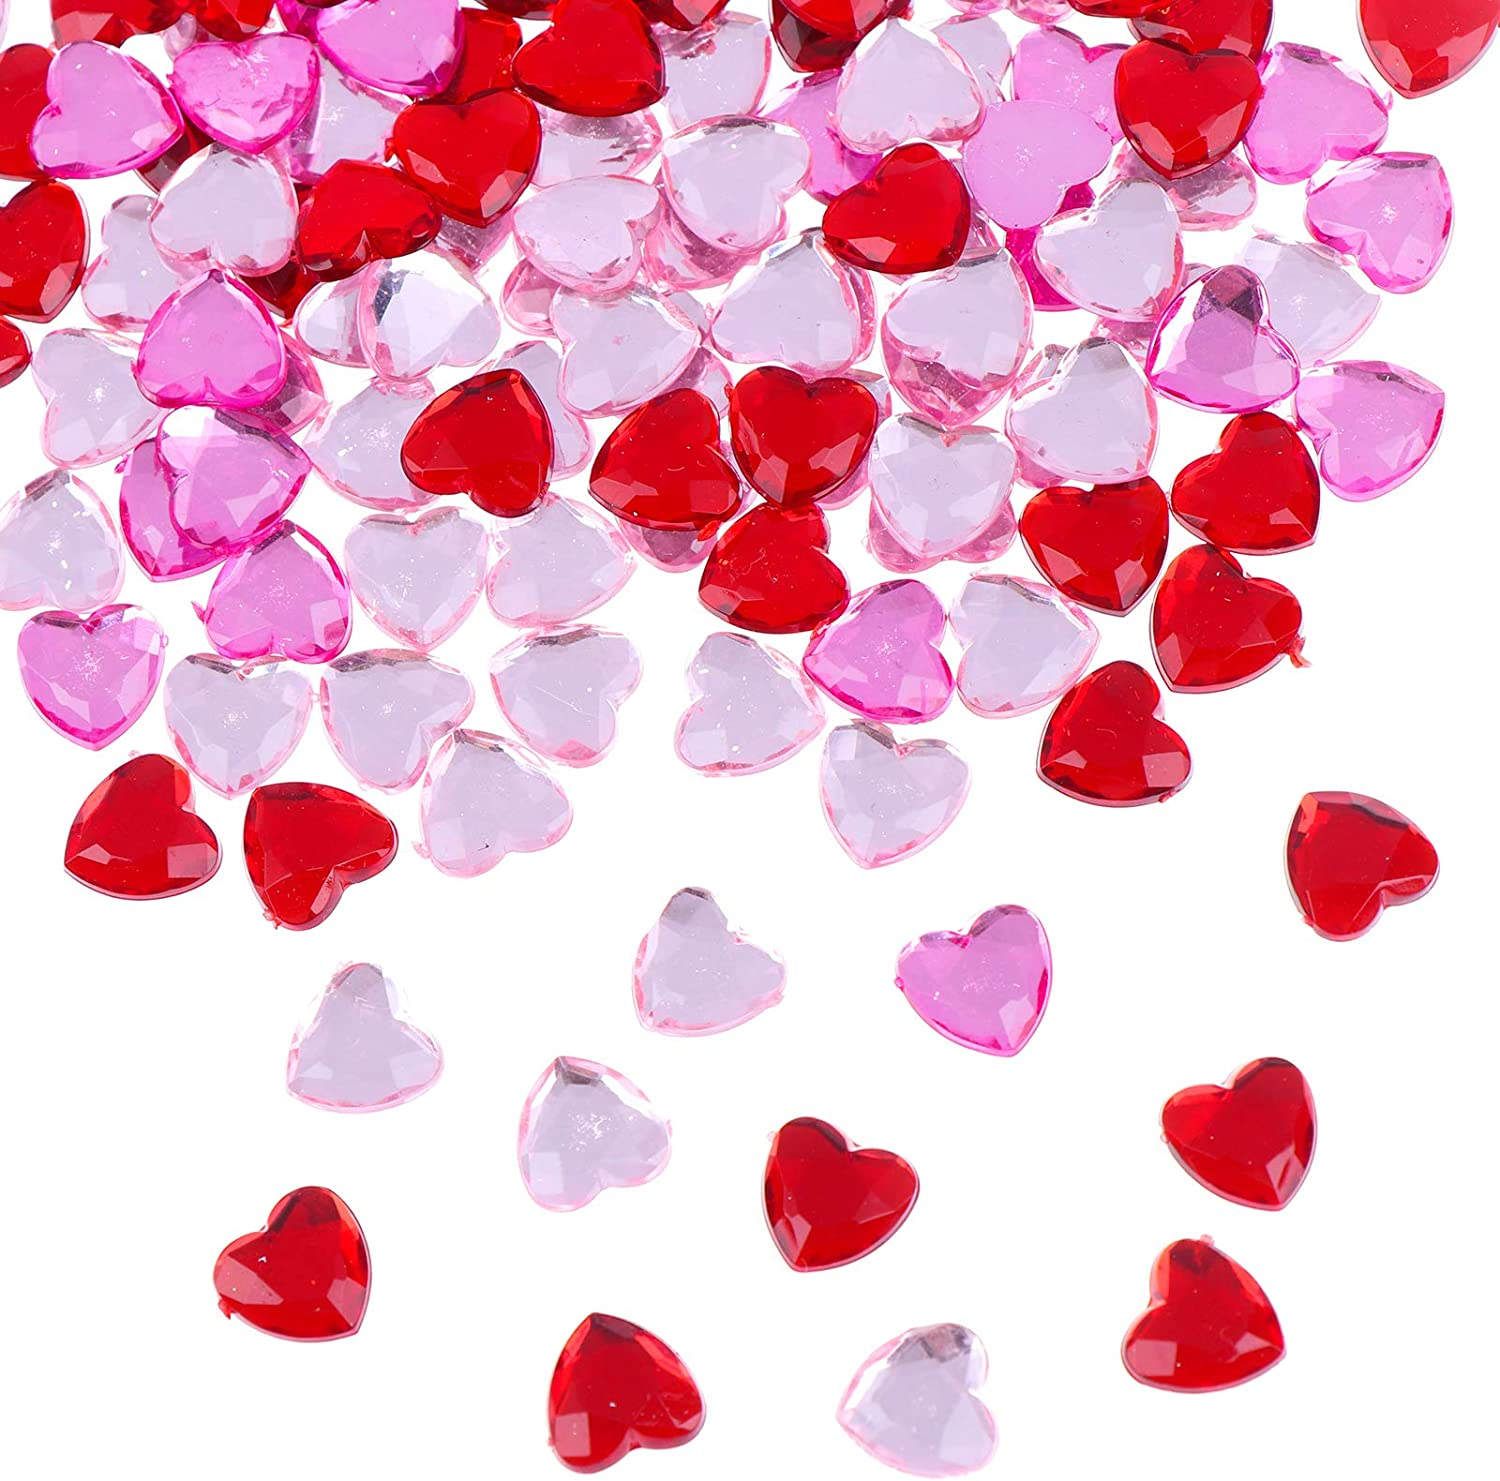 PIAOPIAONIU 600 Count Red Pink Acrylic Heart for Valentines Day,Heart Gems,Wedding Heart Table Scatter Decoration,Flat Back Heart Rhinestones,Heart Glass Crystal Decor for DIY Crafts Jewelry Making